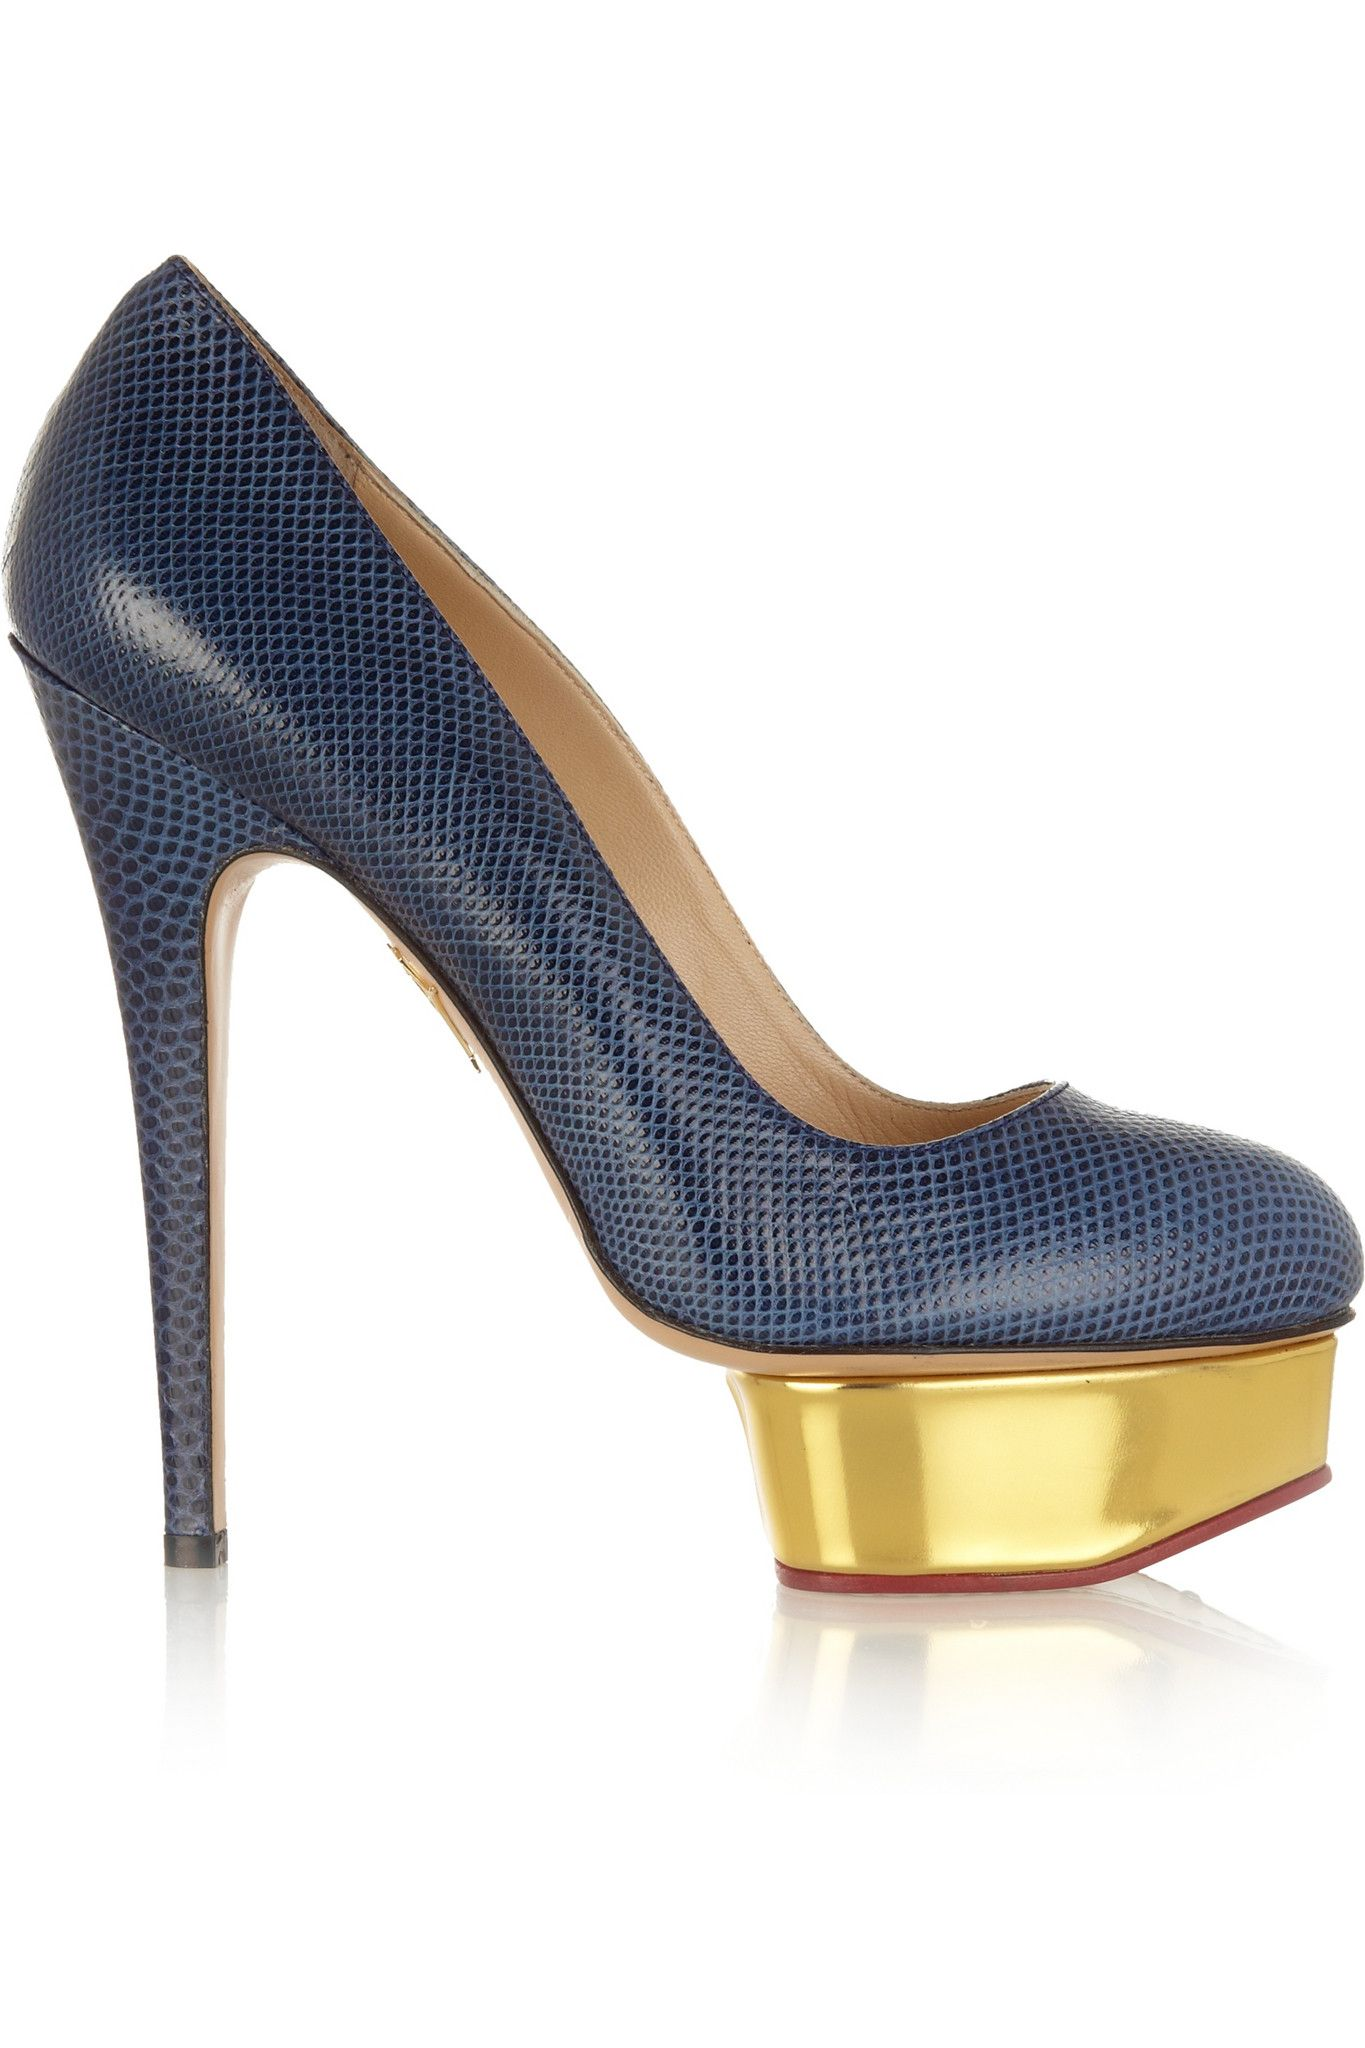 Charlotte Olympia - Dolly karung pumps. Shoe BoxMidnight BlueCharlotte ...